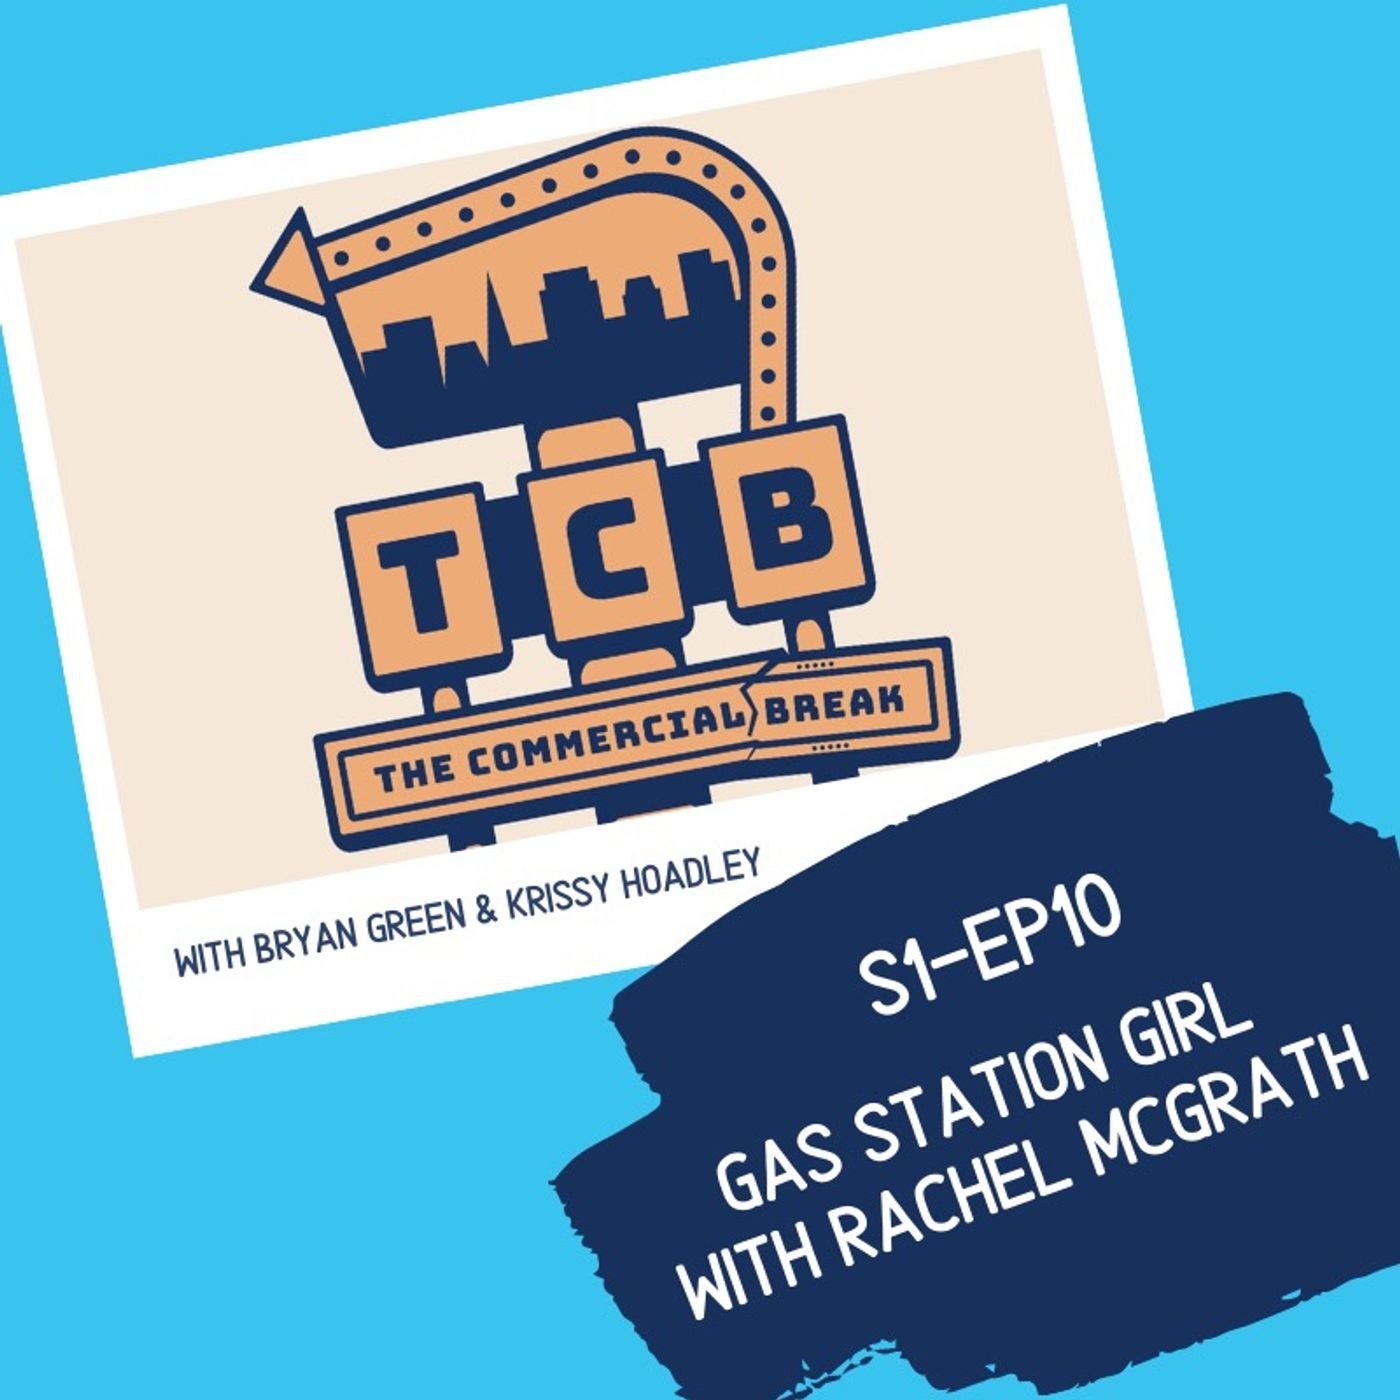 S1-EP10: Gas Station Girl With Rachel Mcgrath